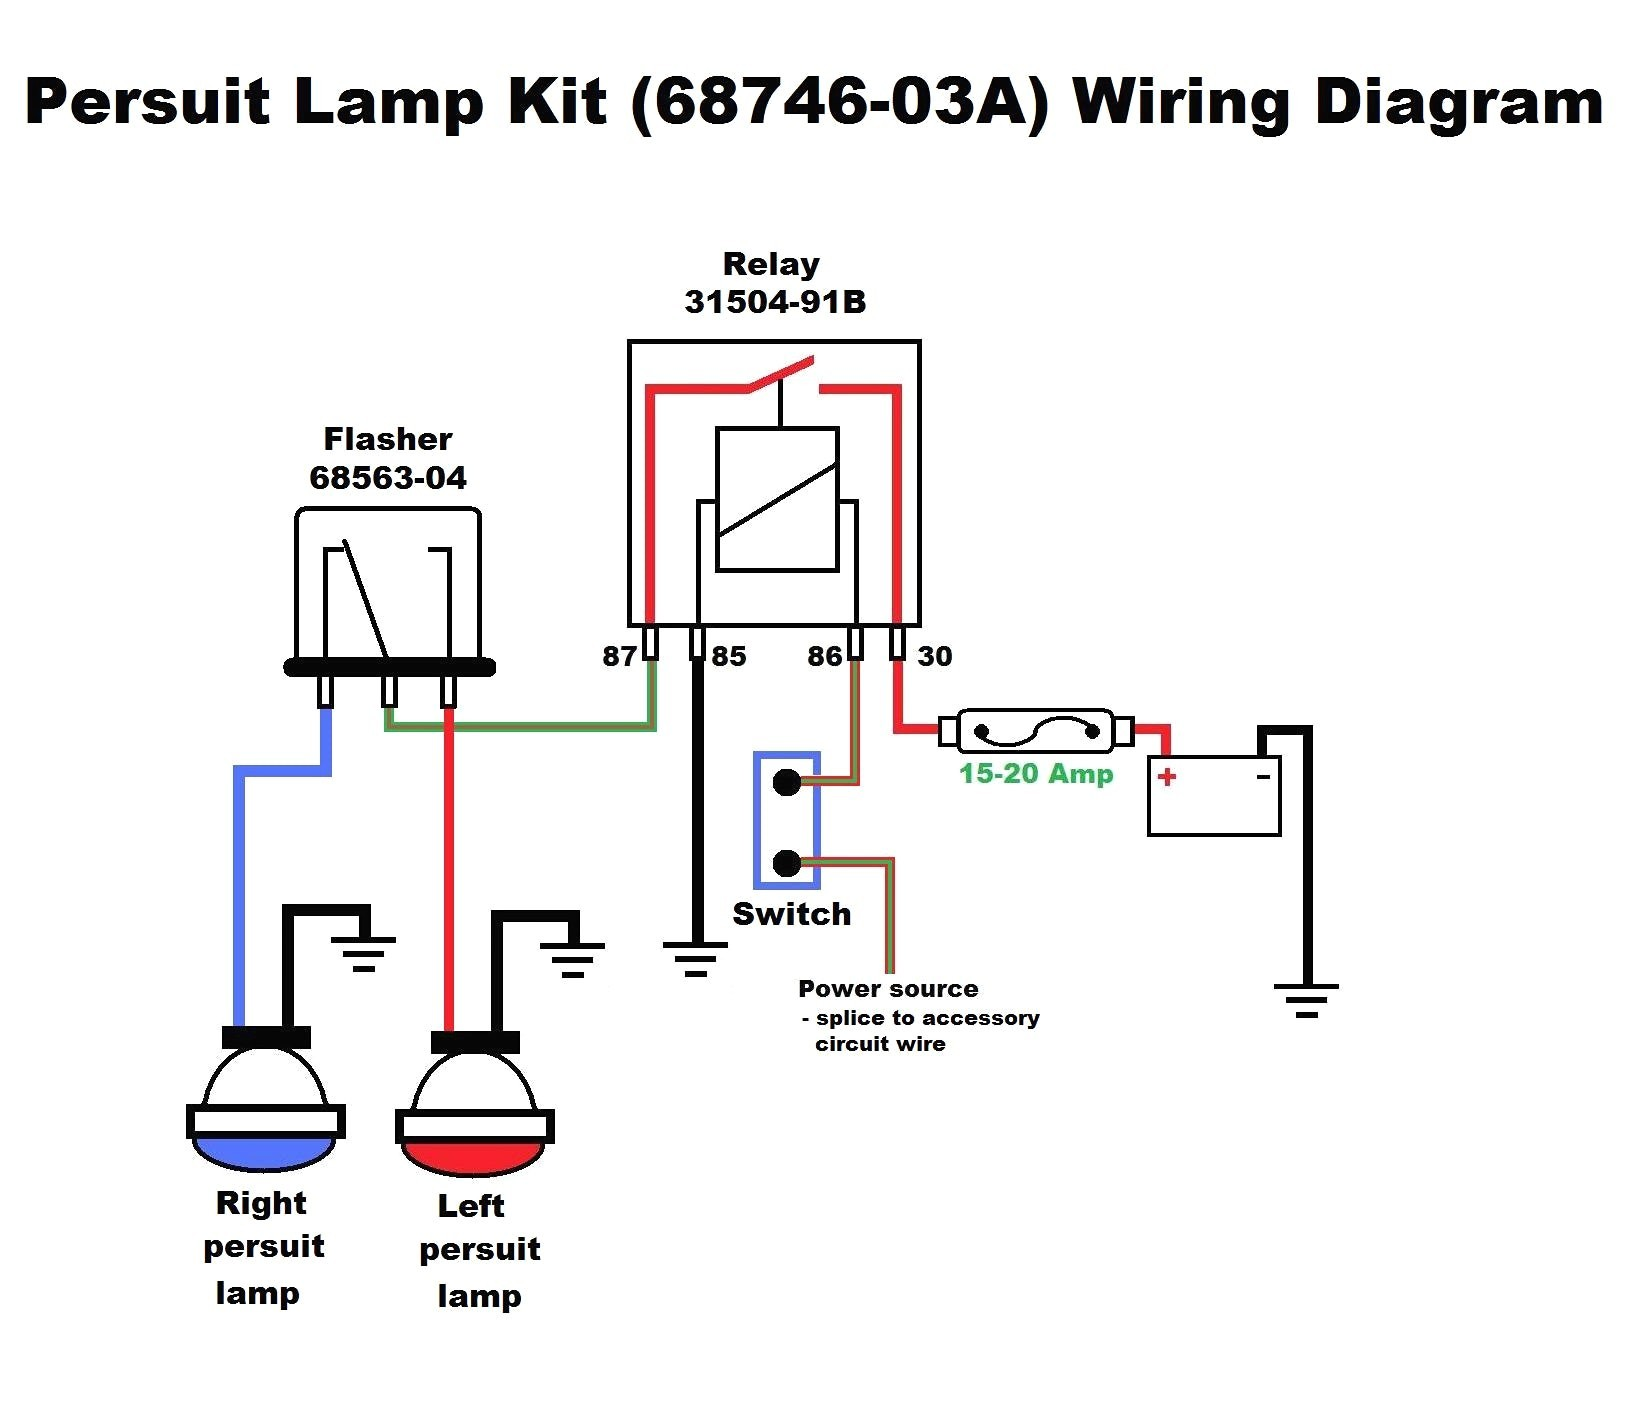 Wiring Diagram for 3 Prong Flasher ✦diagram Based✦ Turn Signal Flasher Relay Diagram Of Wiring Diagram for 3 Prong Flasher